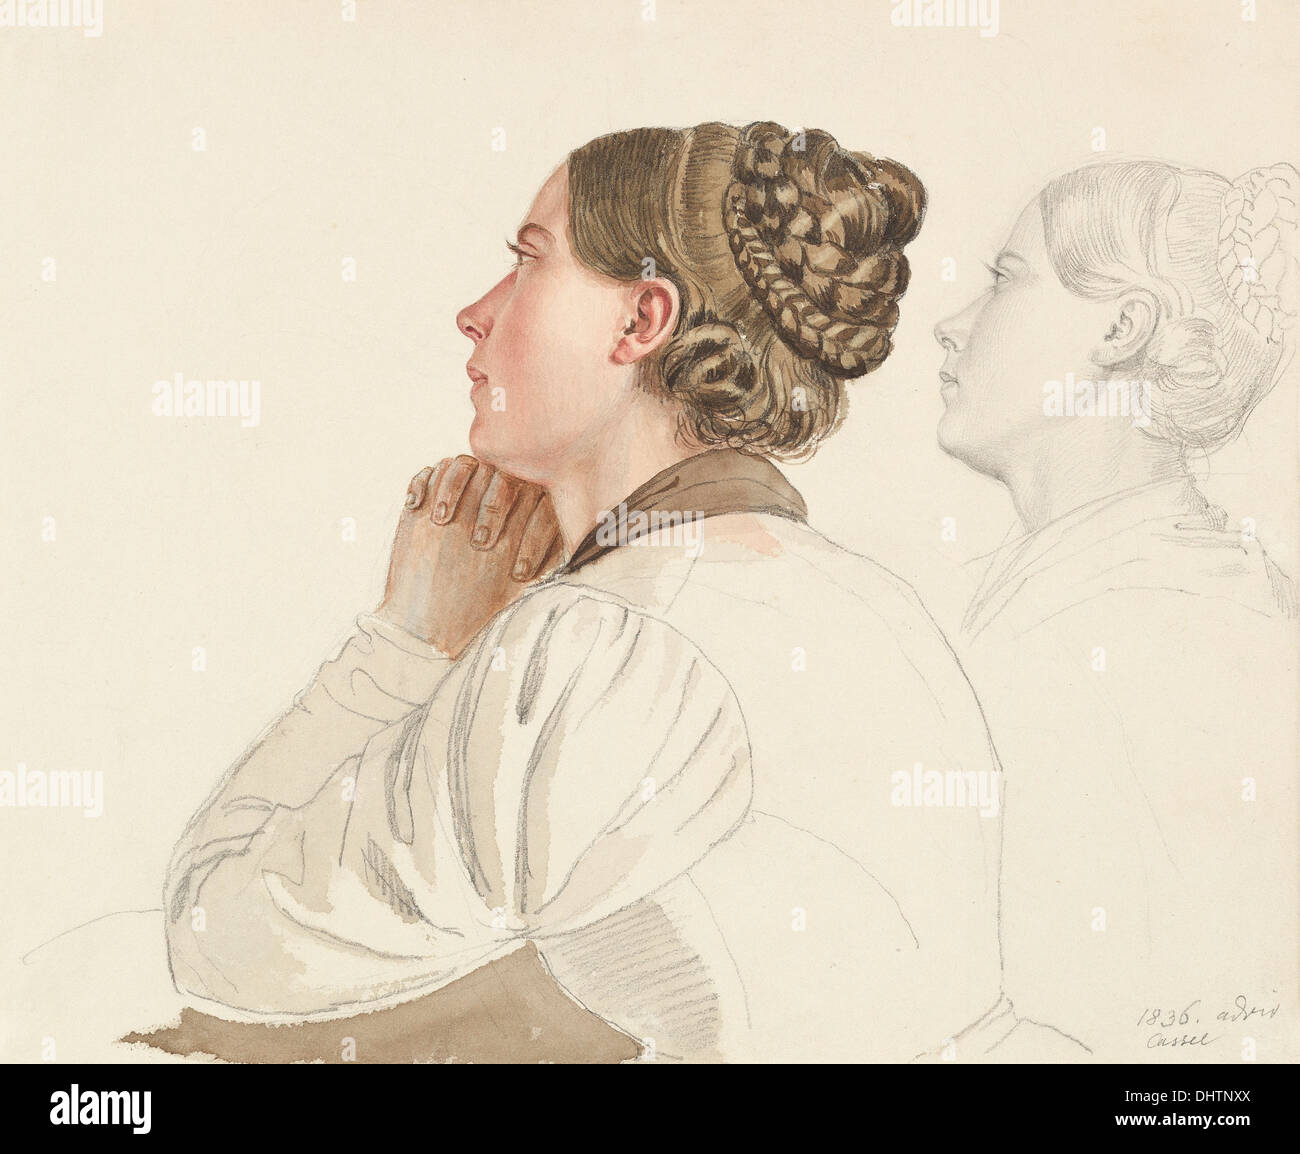 Studies of Woman Praying - by Ludwig Emil Grimm, 1800's - Stock Image